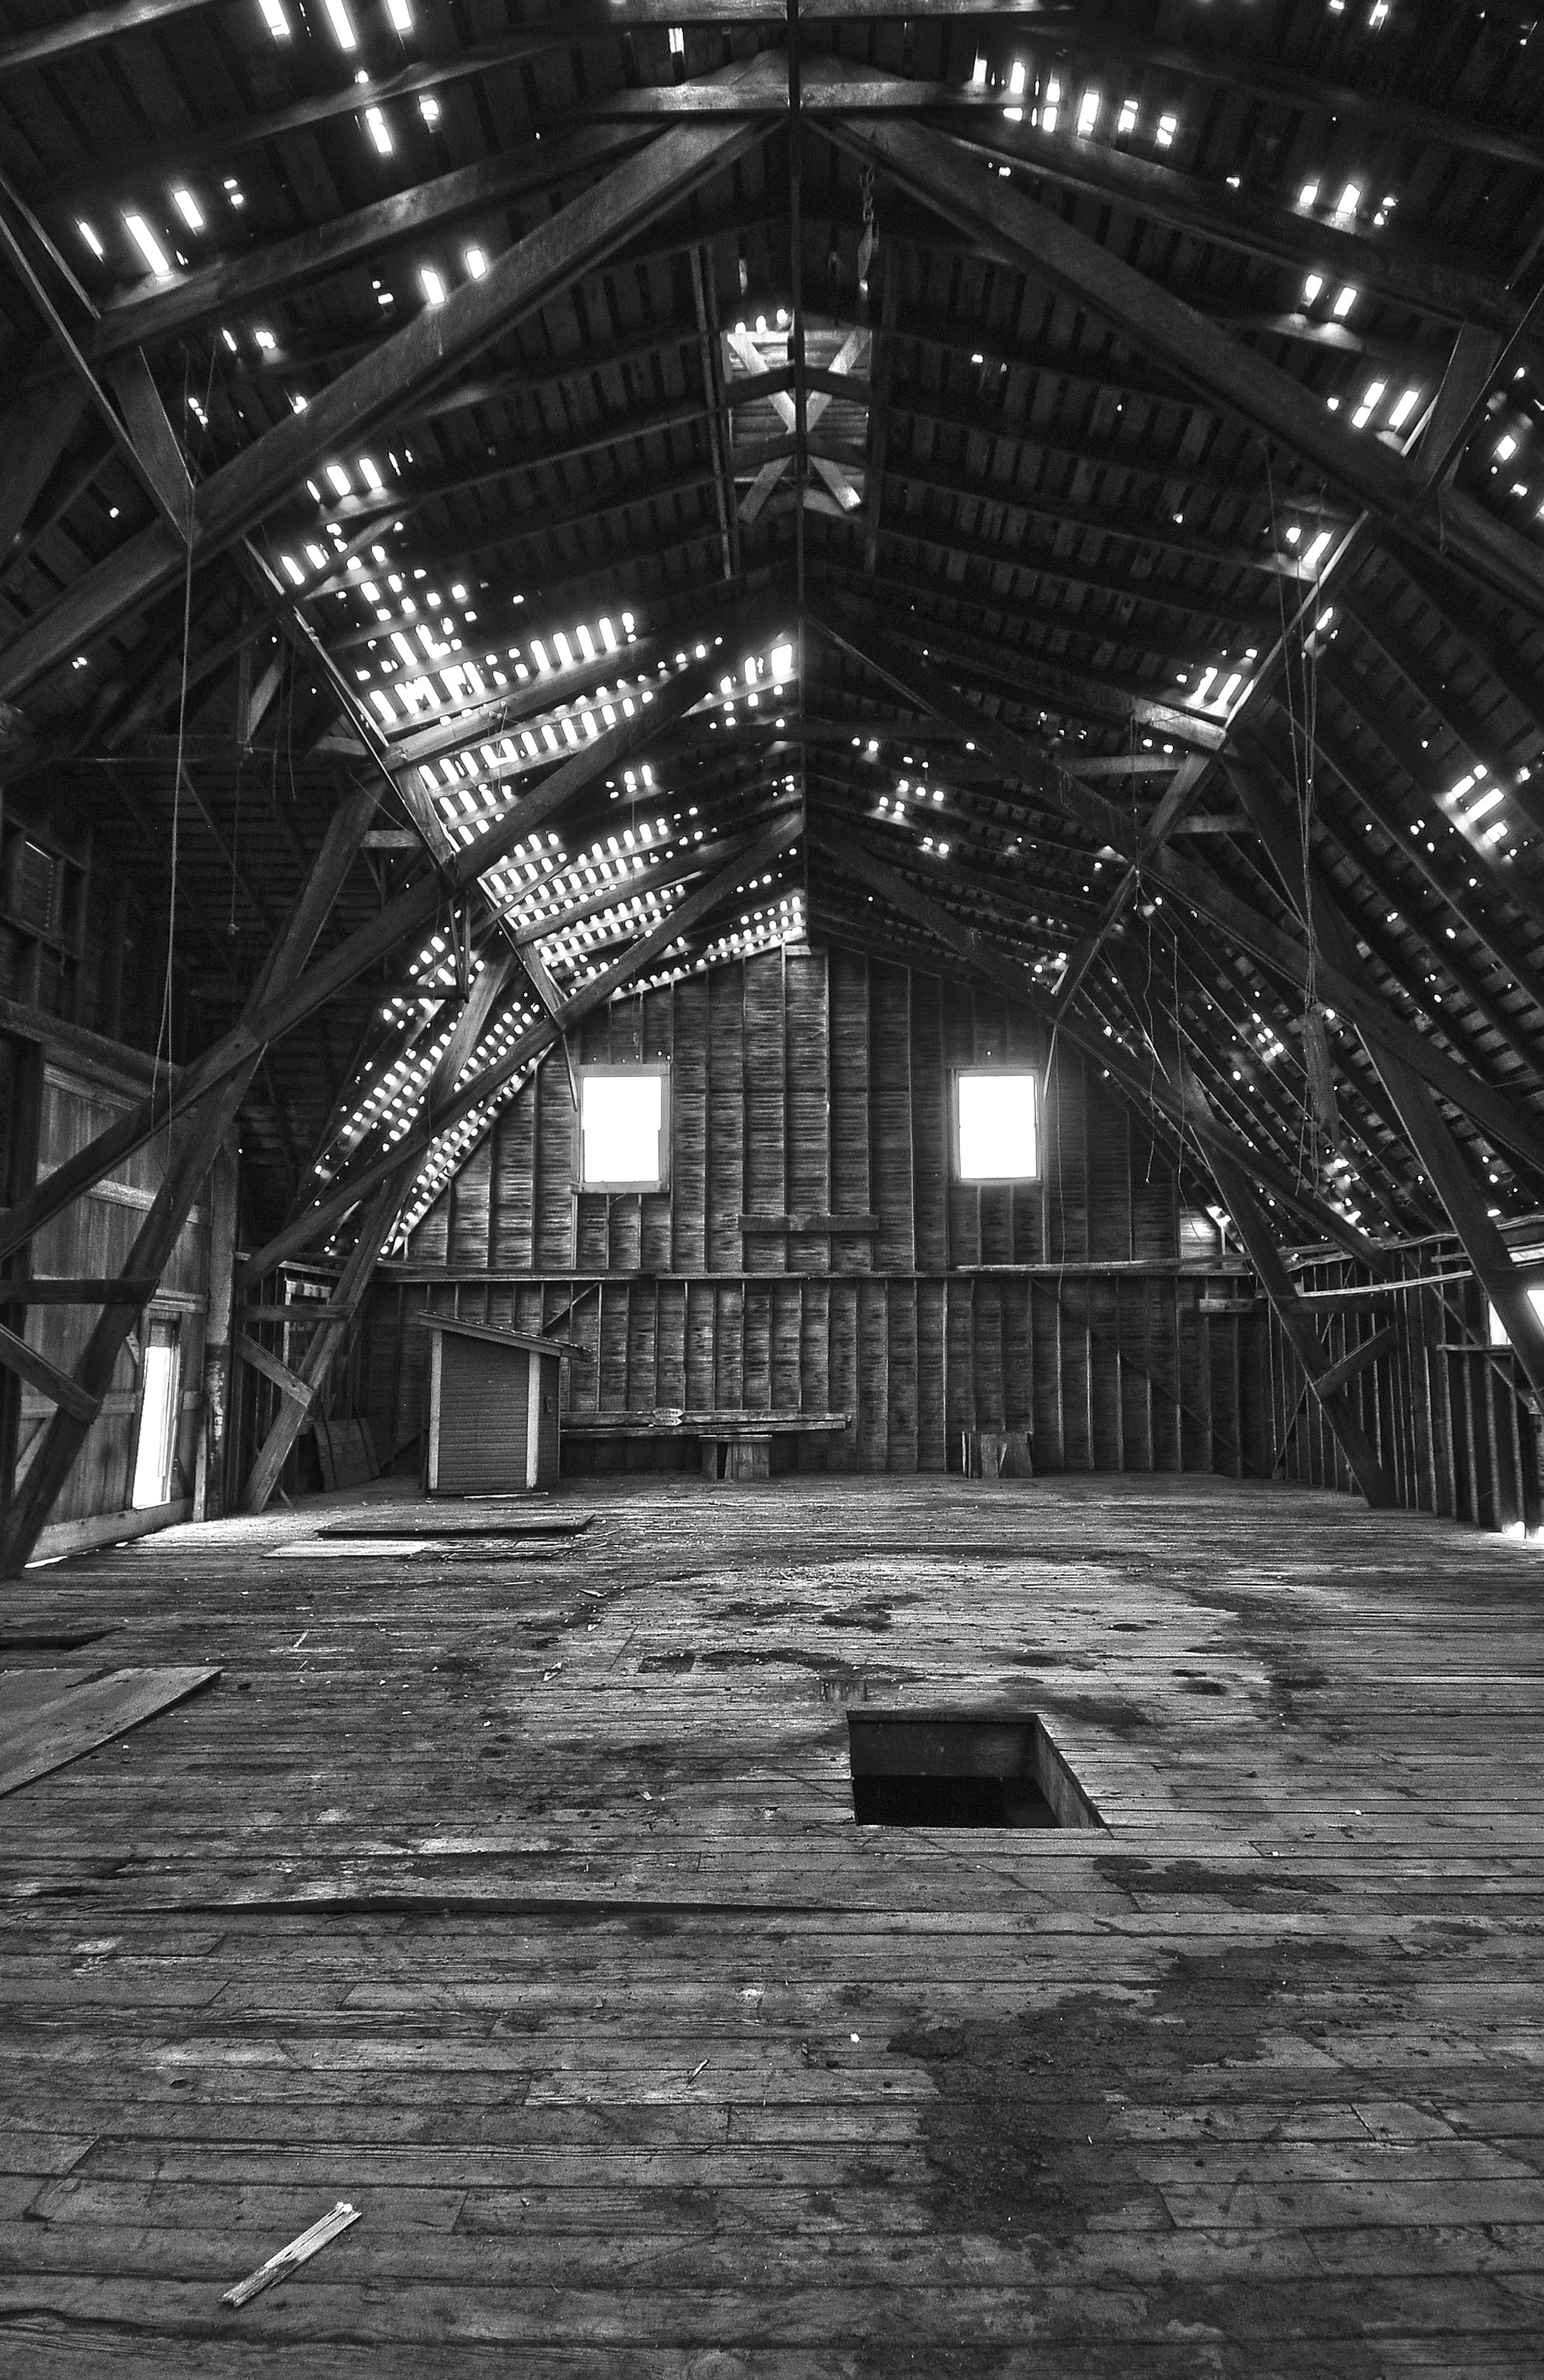 Historic Johnson Farm barn interior at Bucking Horse